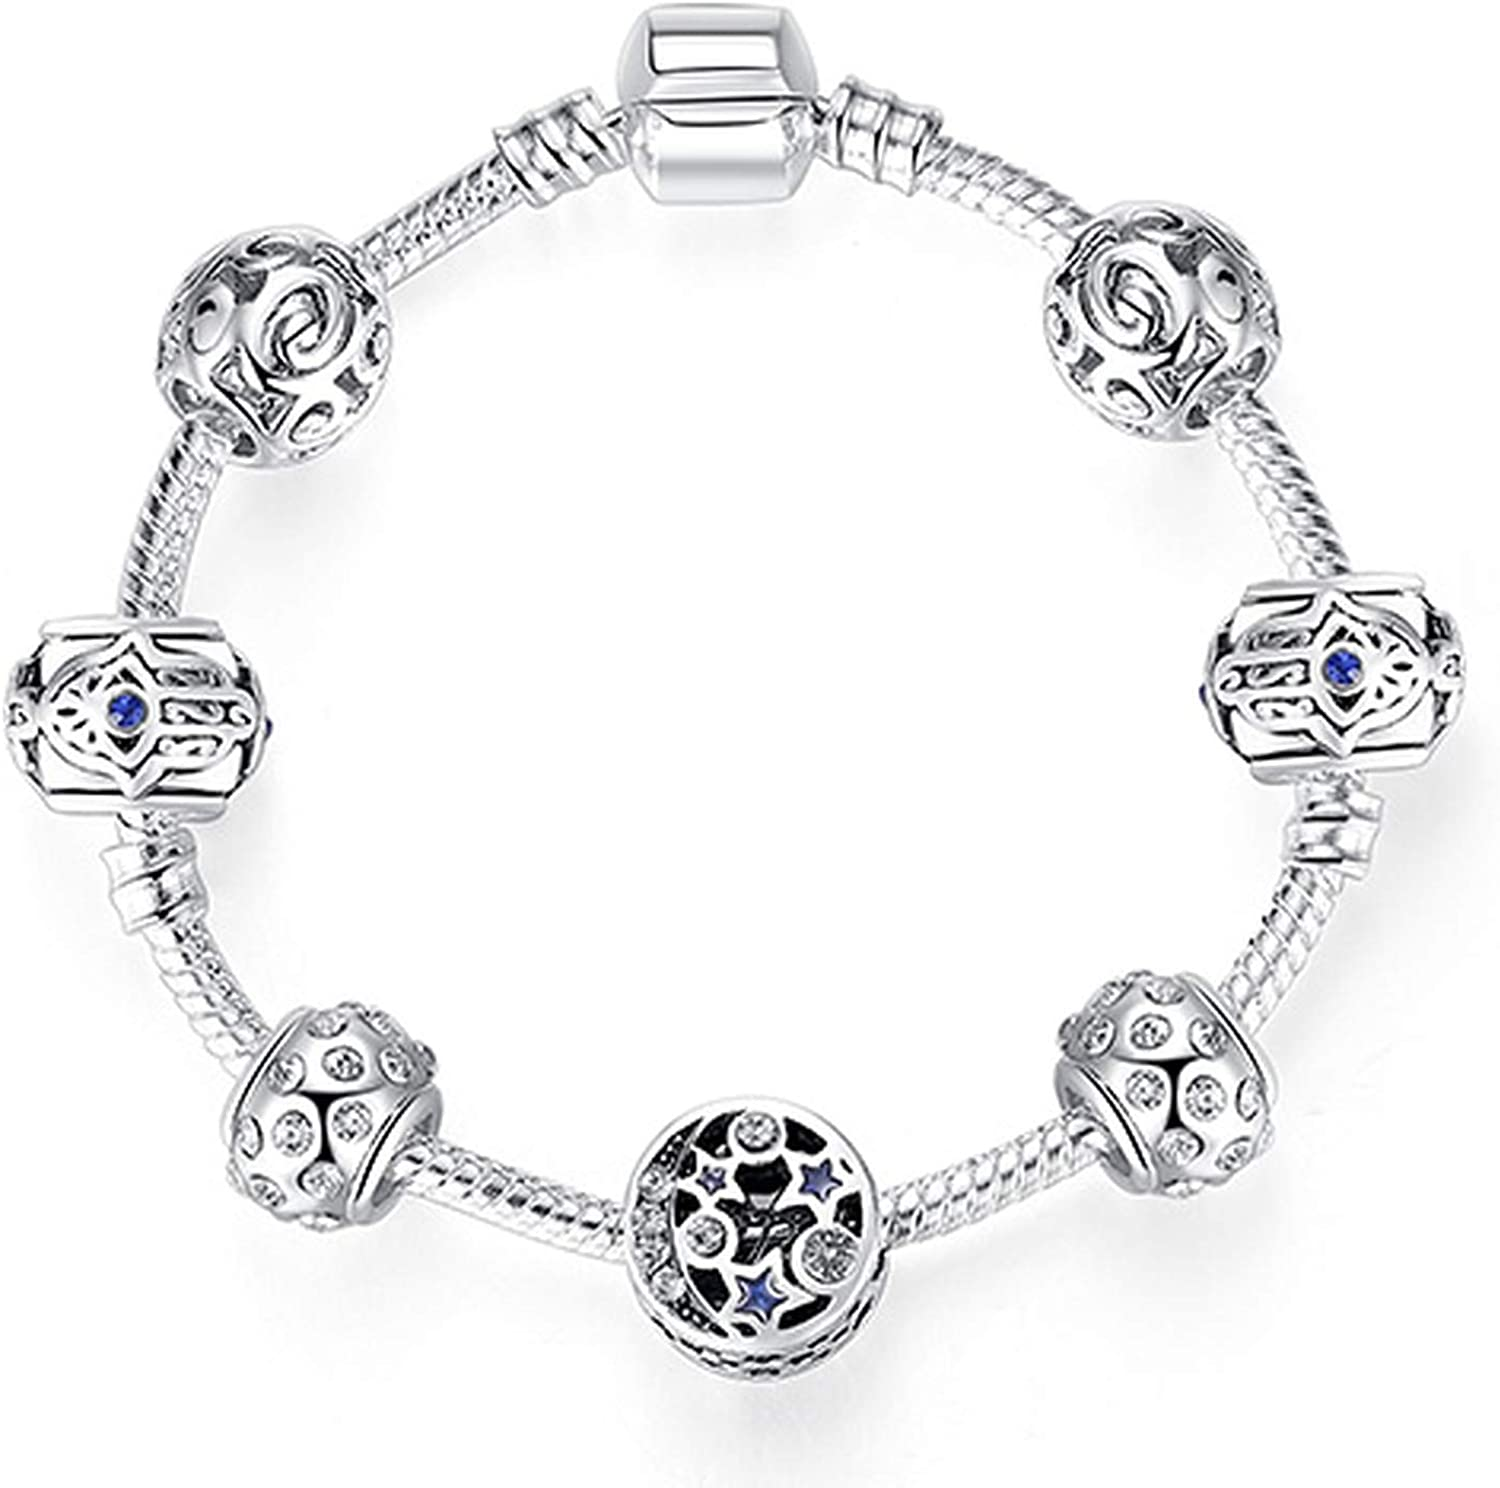 Silver 925 Crystal Four Leaf Clover Clear Beads Charm Bracelet Bangle For Women PS3860 19cm